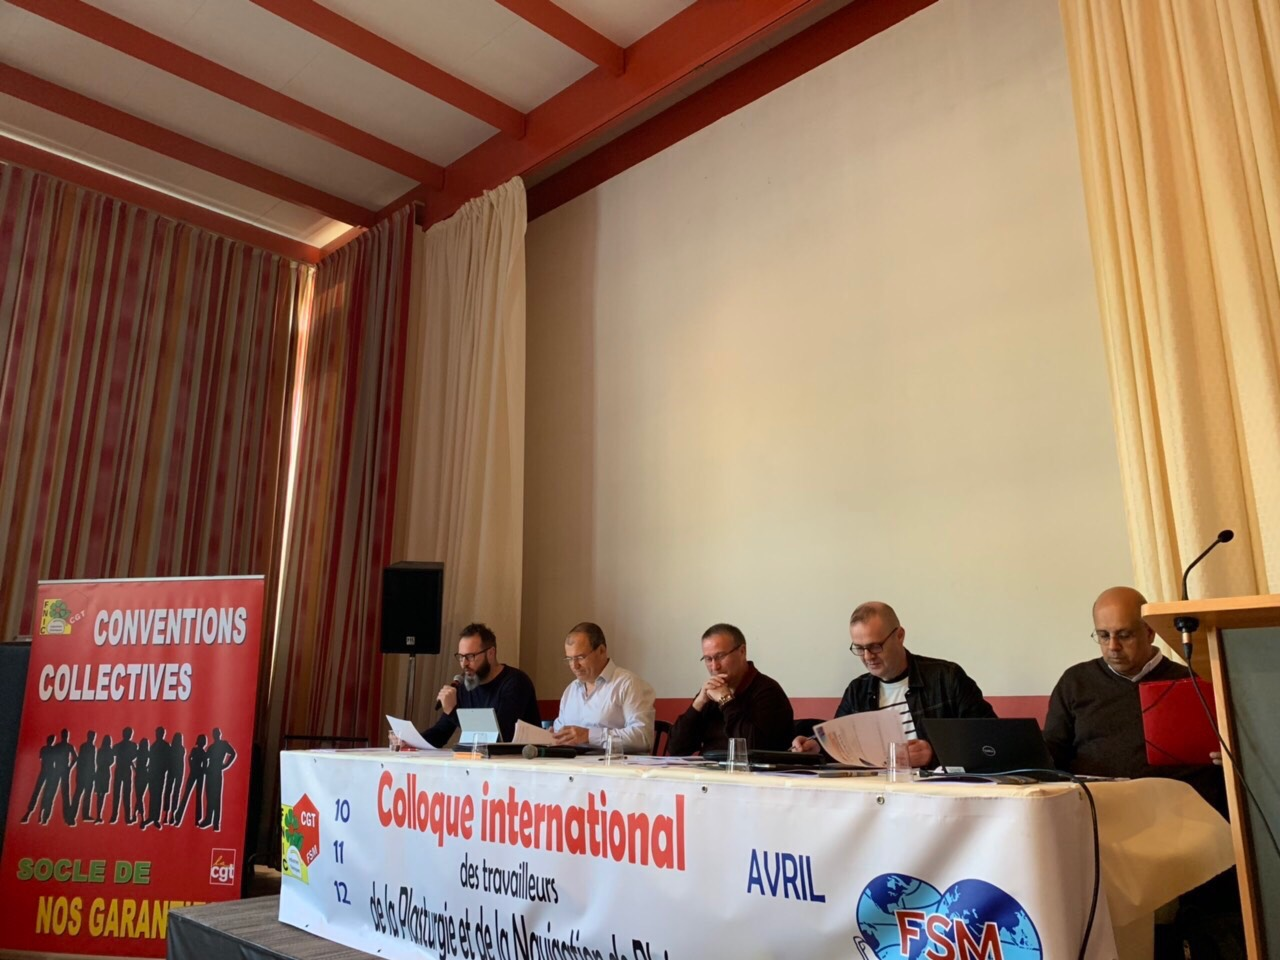 WFTU » France: the WFTU is present in the International